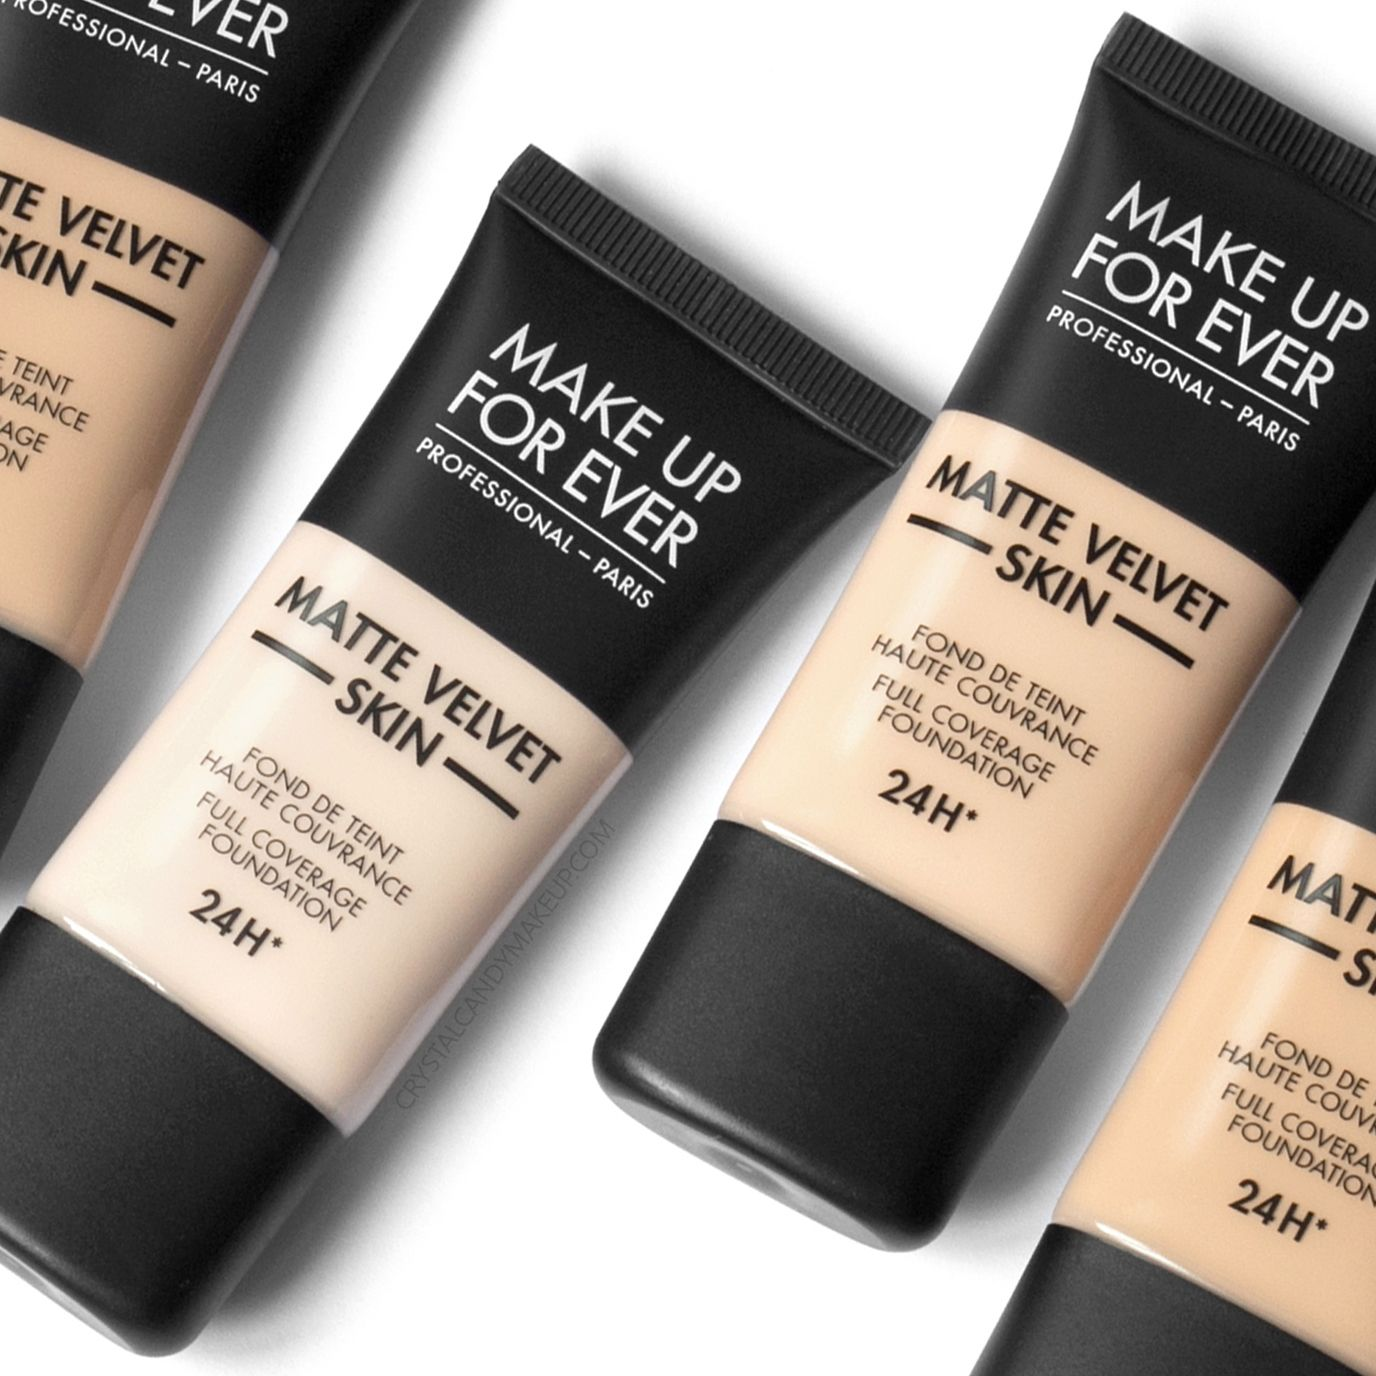 Make Up For Ever's new Matte Velvet Skin Foundation